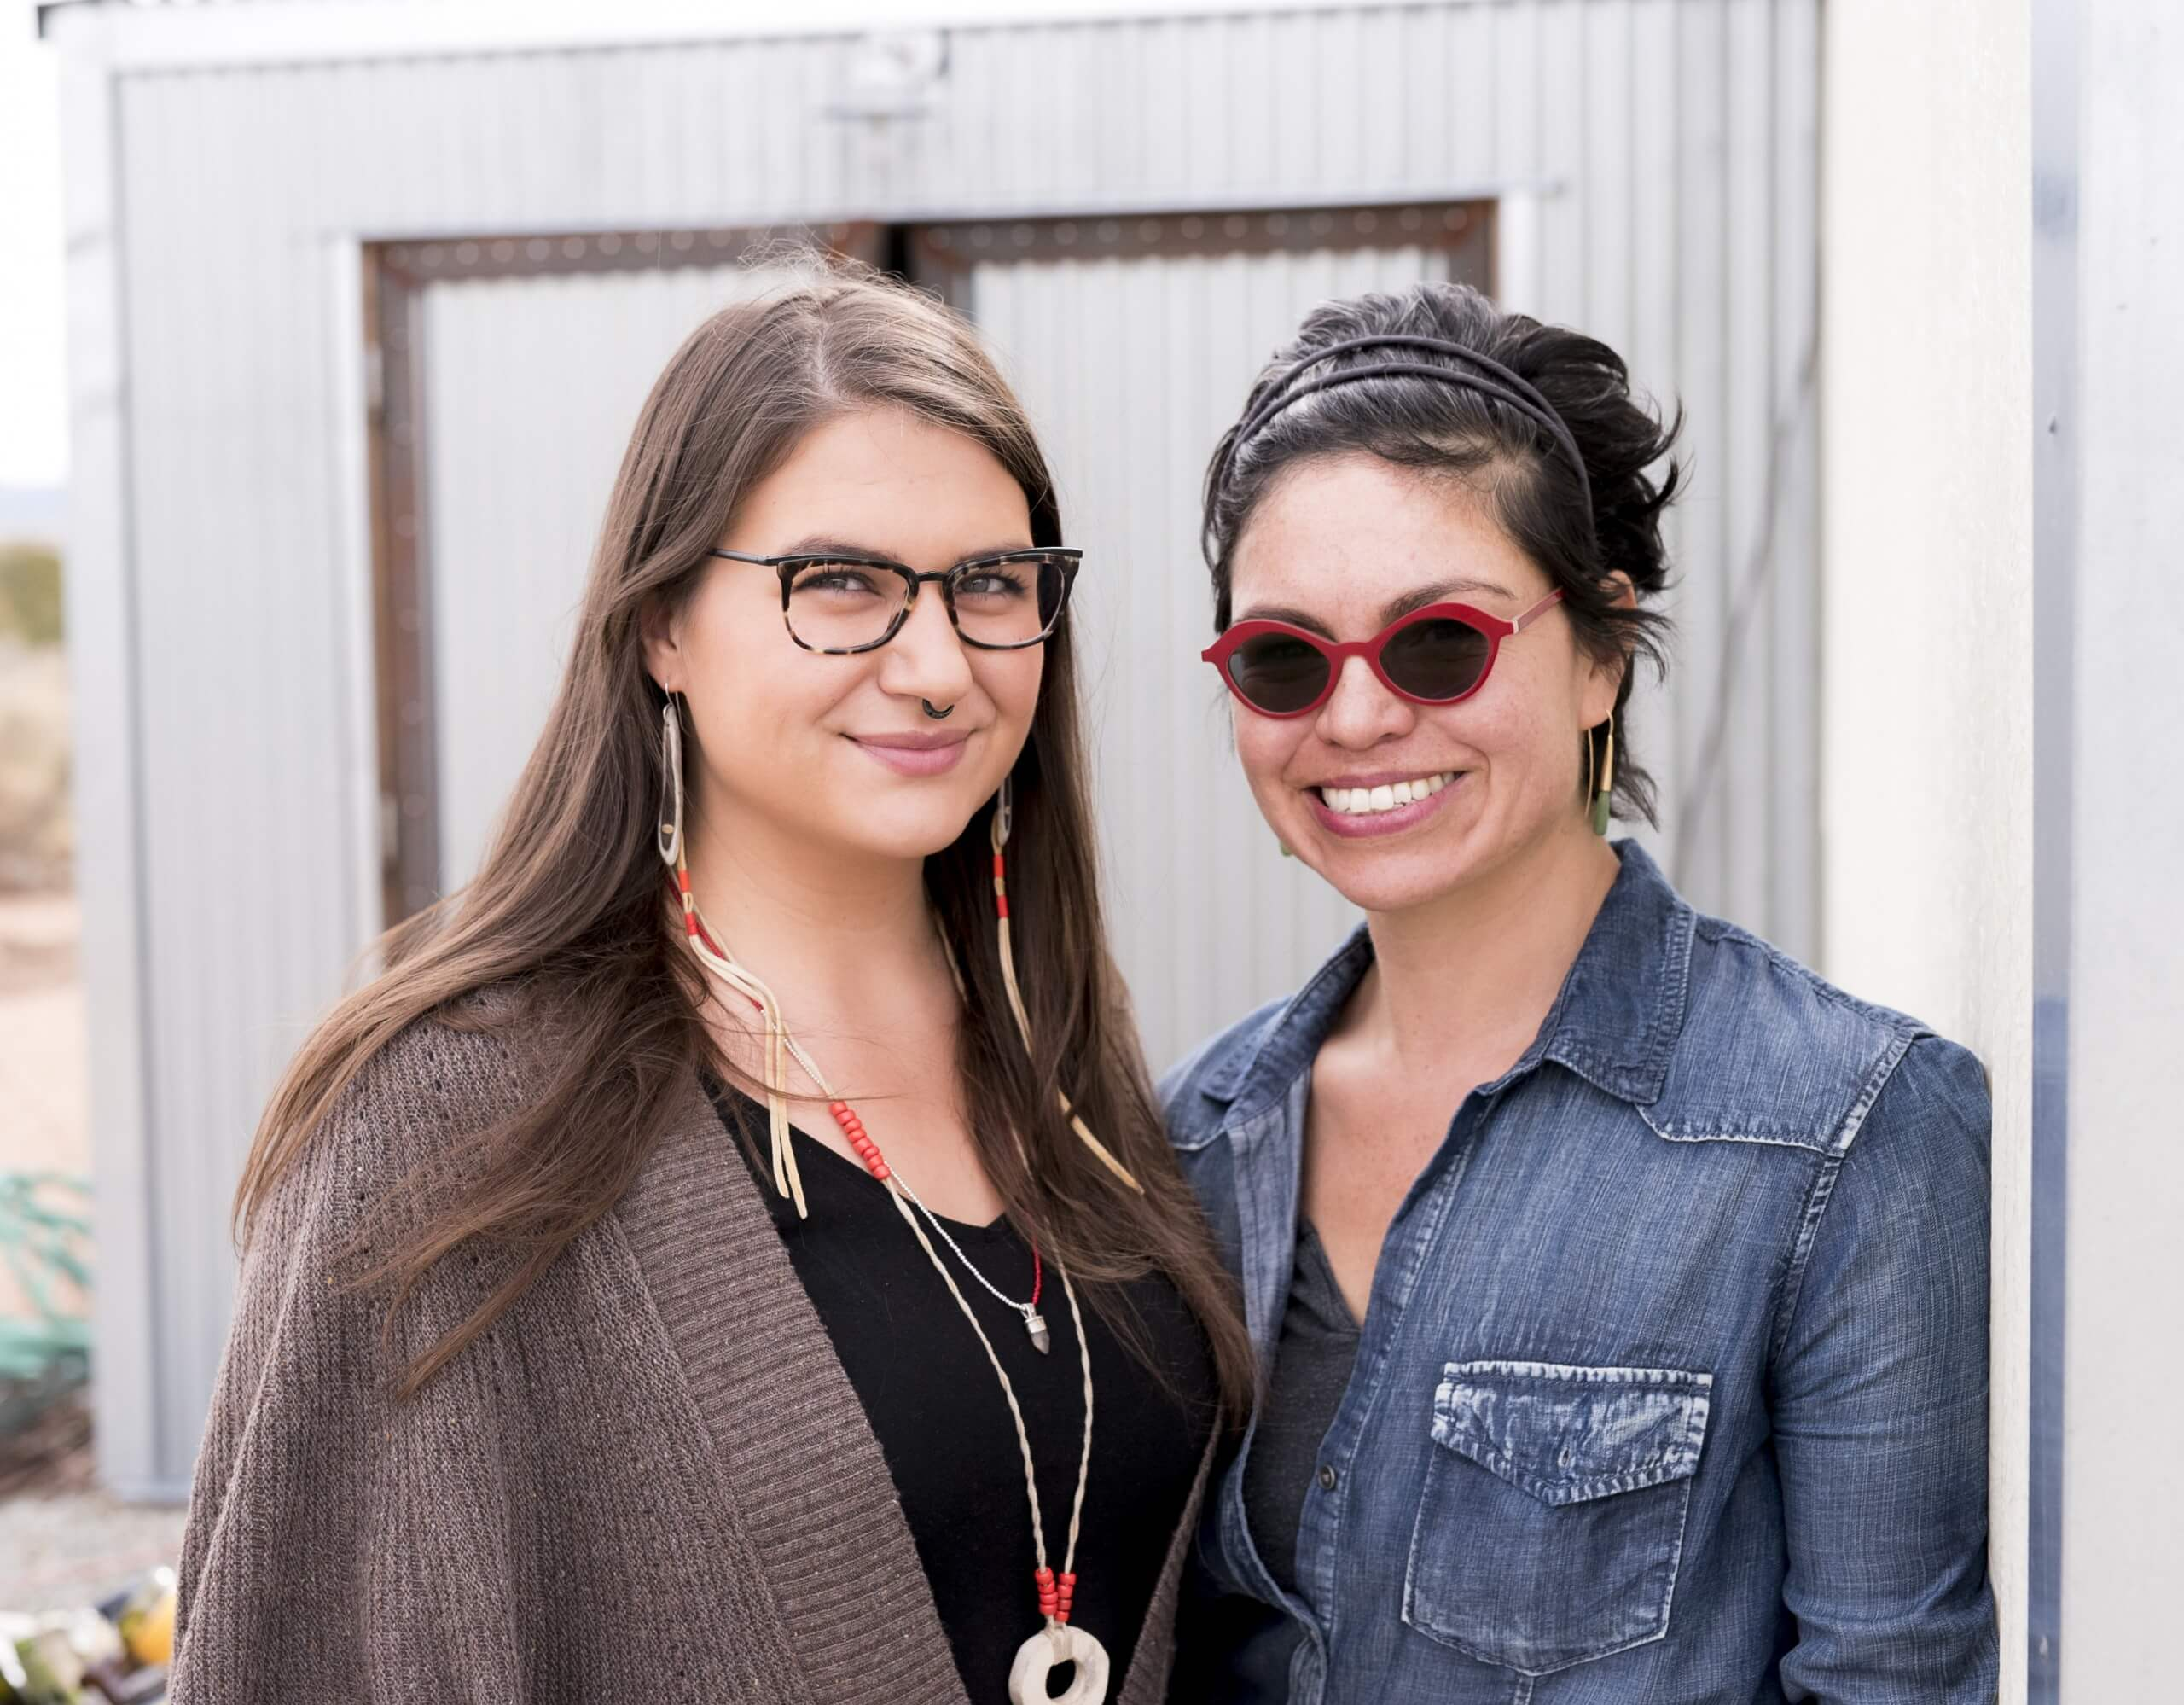 Keri Ataumbi (Kiowa) and Tania Larsson (Gwich'in) outside the studio